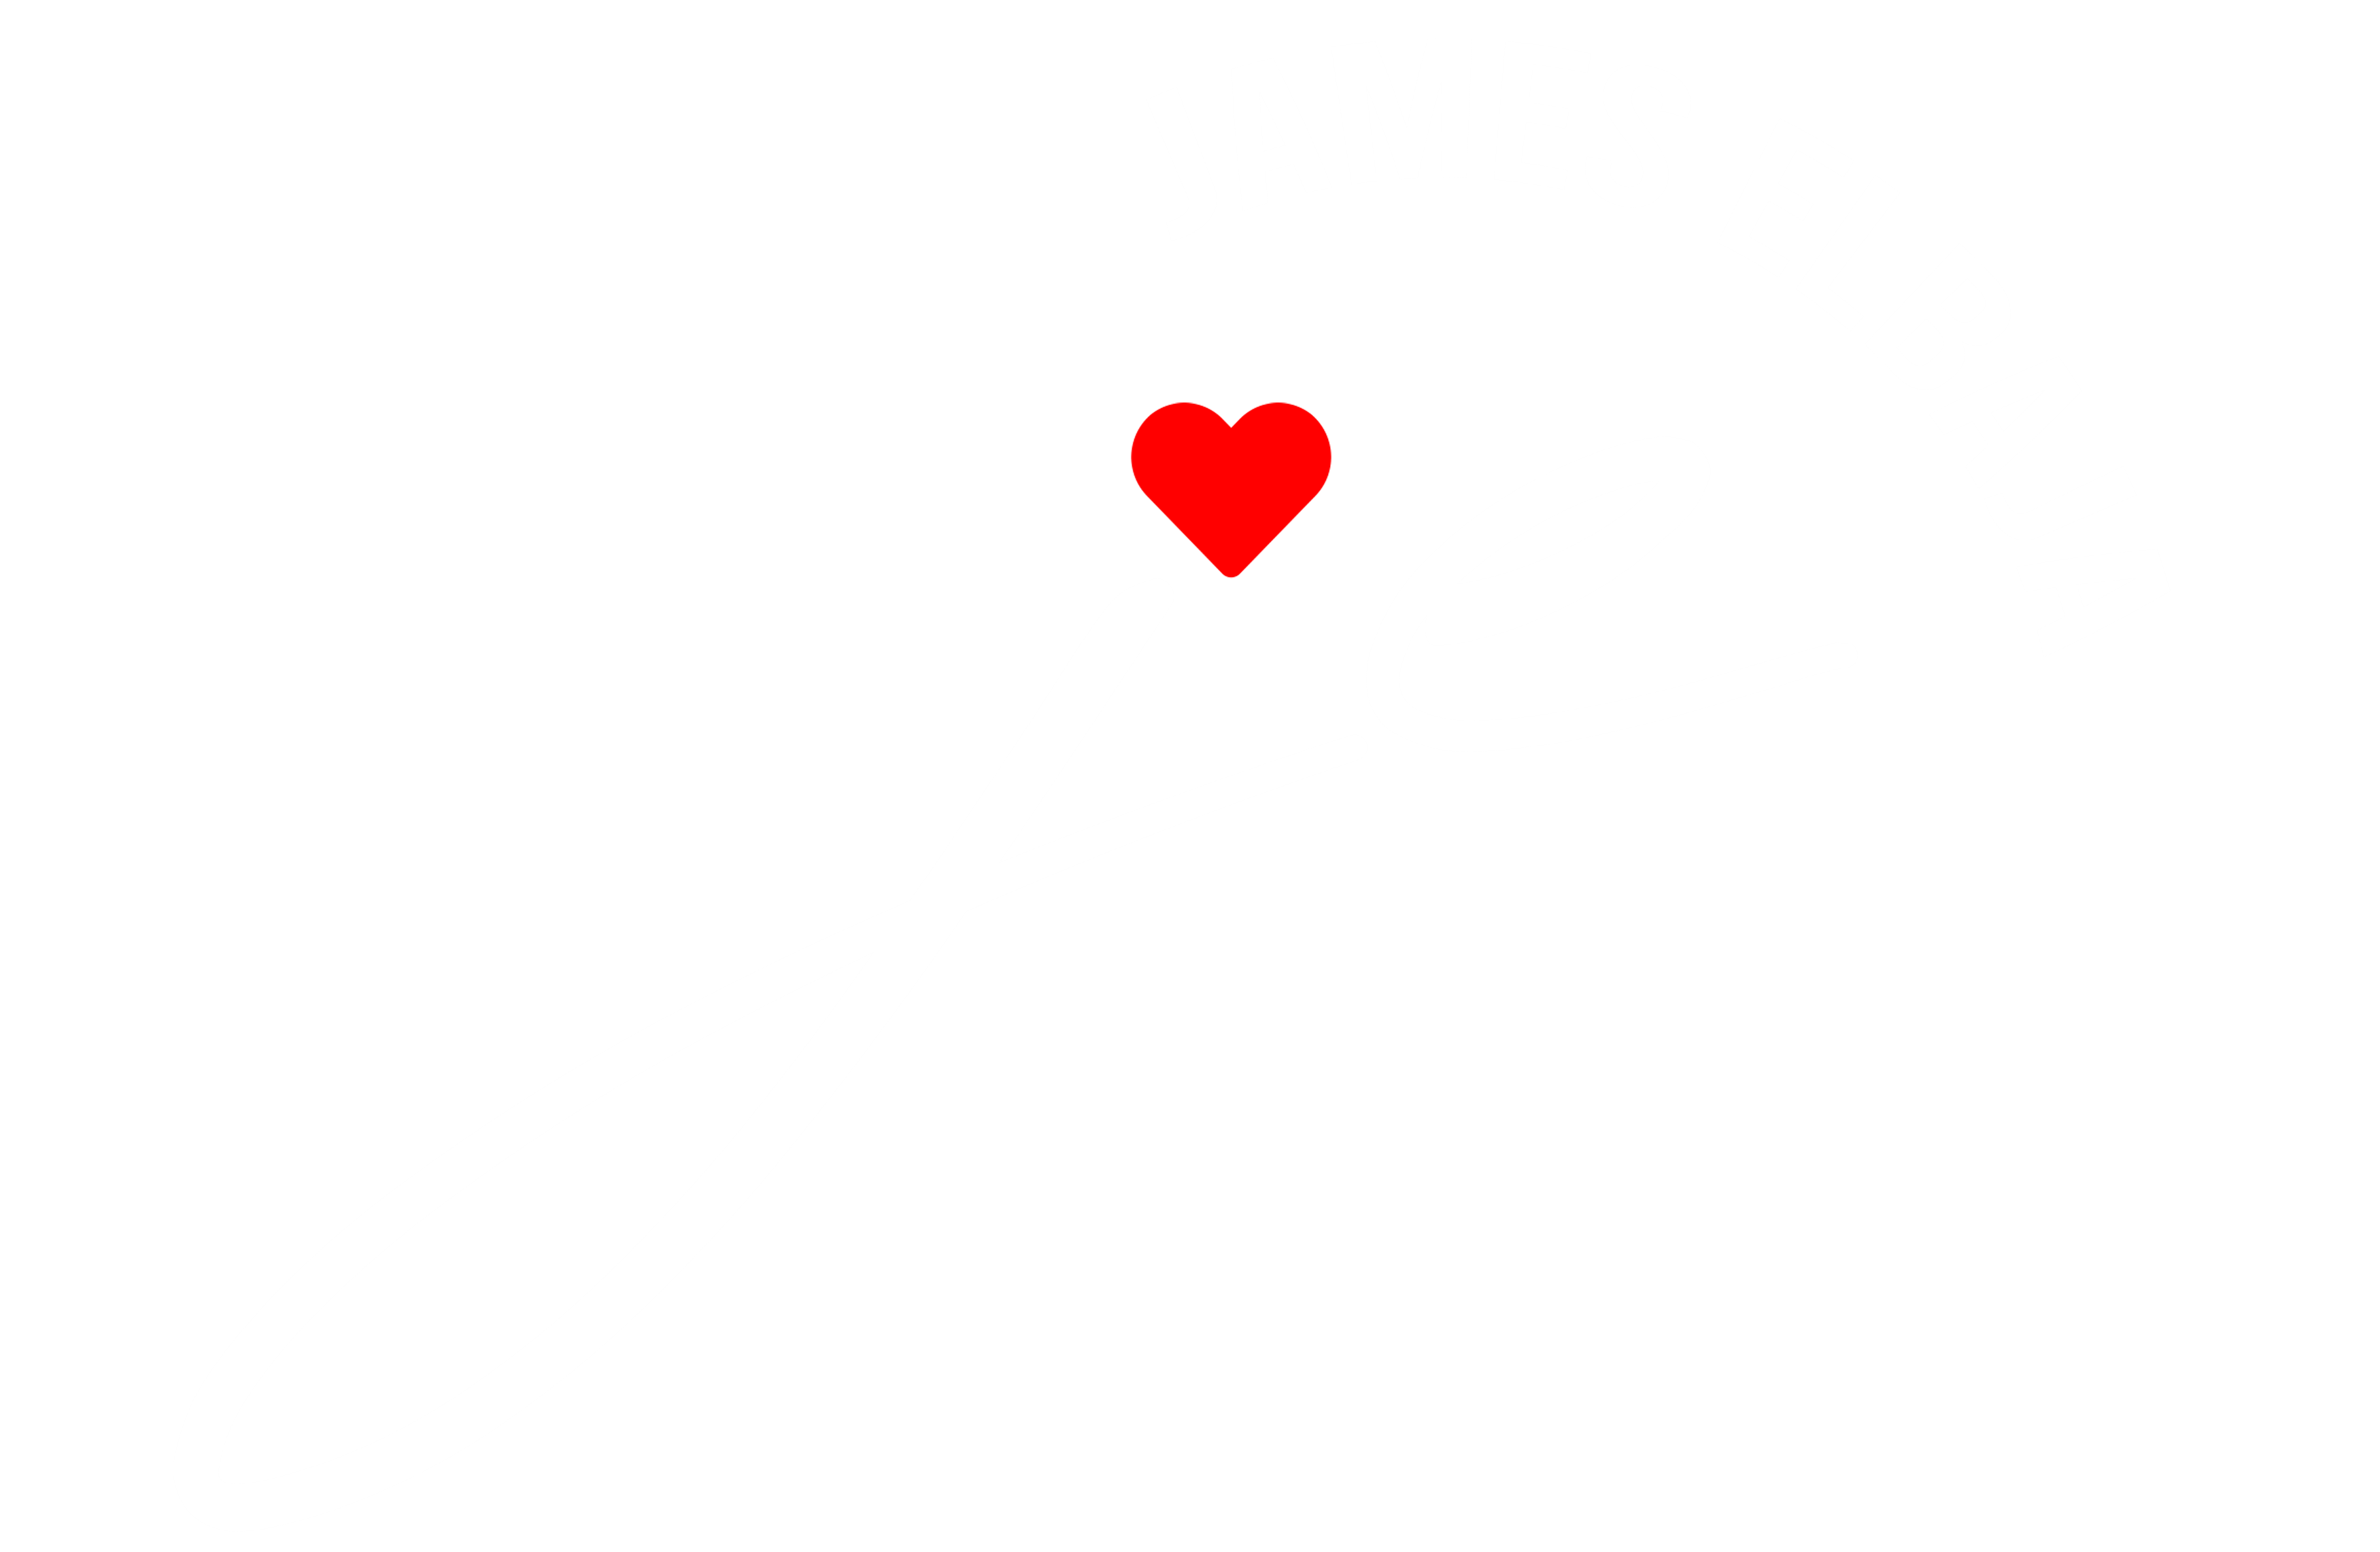 james elbaja logo